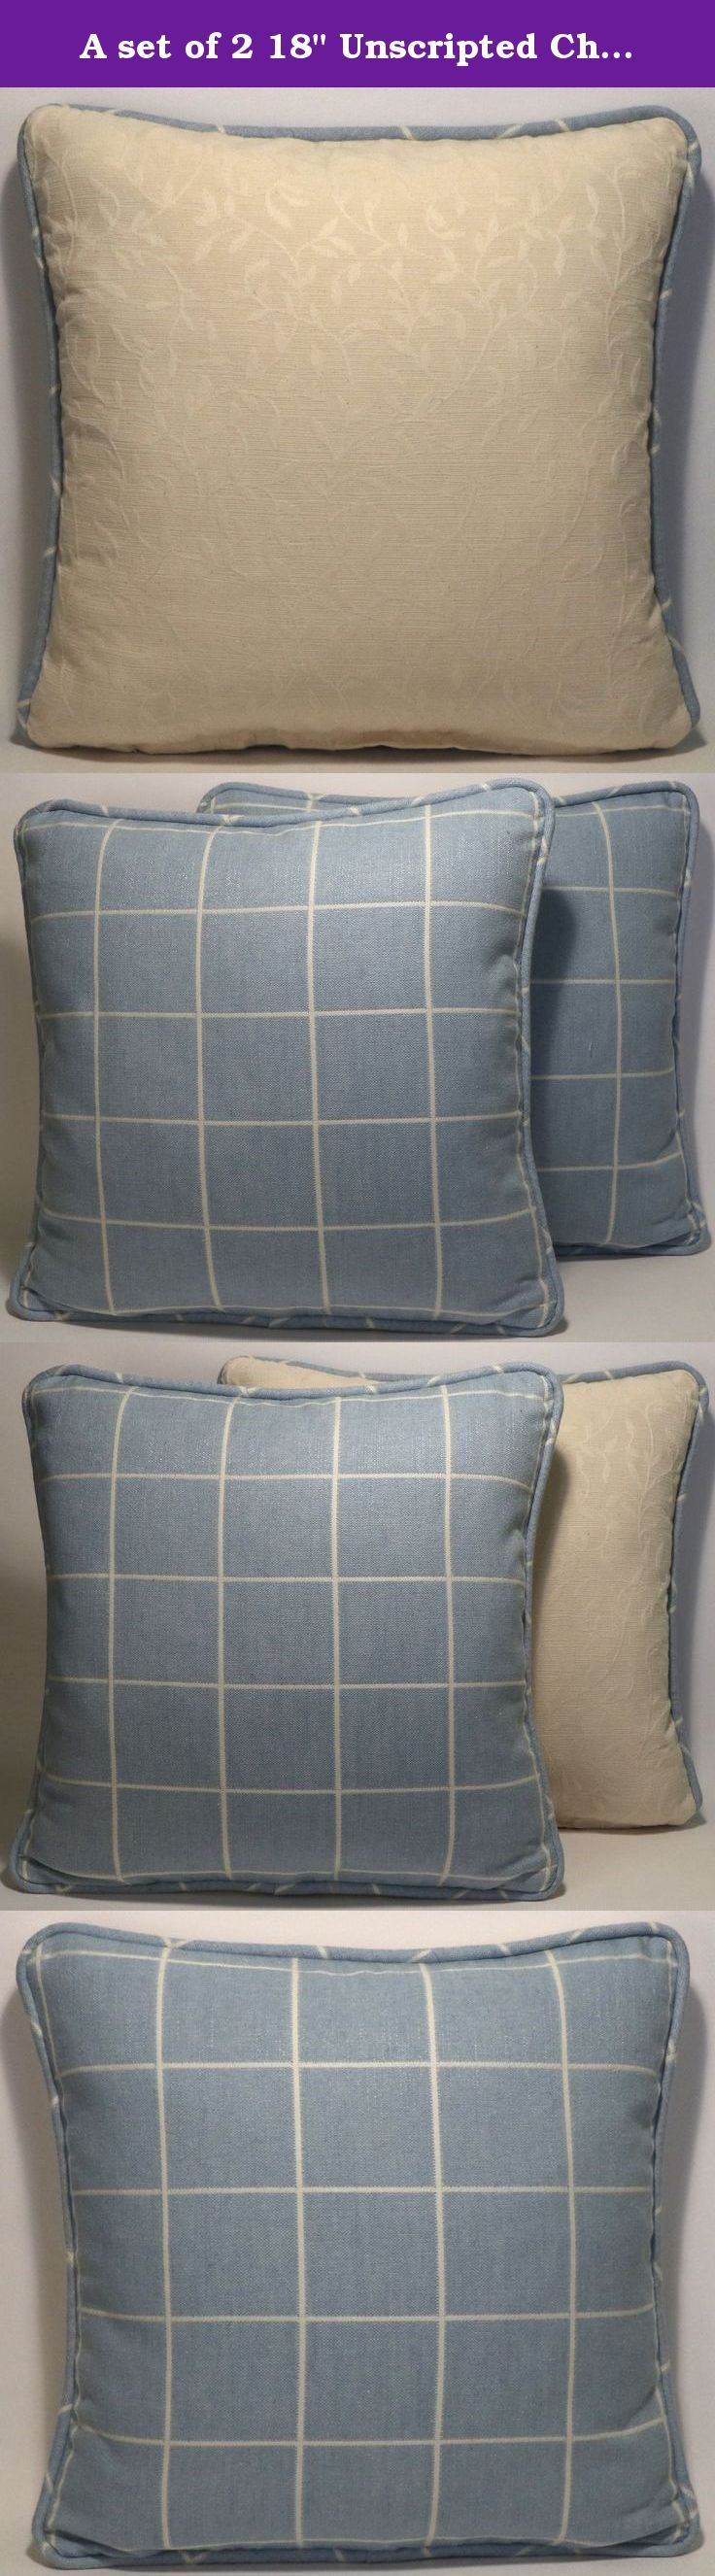 "A set of 2 18"" Unscripted Chambray Robert Allen Blue and Cream Check Designer Throw Pillows. Two 18"" square Designer Throw Pillows with fronts and welt made out of Unscripted Chambray Robert Allen geometric check blue and cream fabric.. The fabric is a linen, cotton, and polyester blend. The first photo shows the front of the pillows. The second photo shows the back of the pillows which are made with a cream fabric with a raised stitched vining leaf pattern. The edges of the pillows are..."